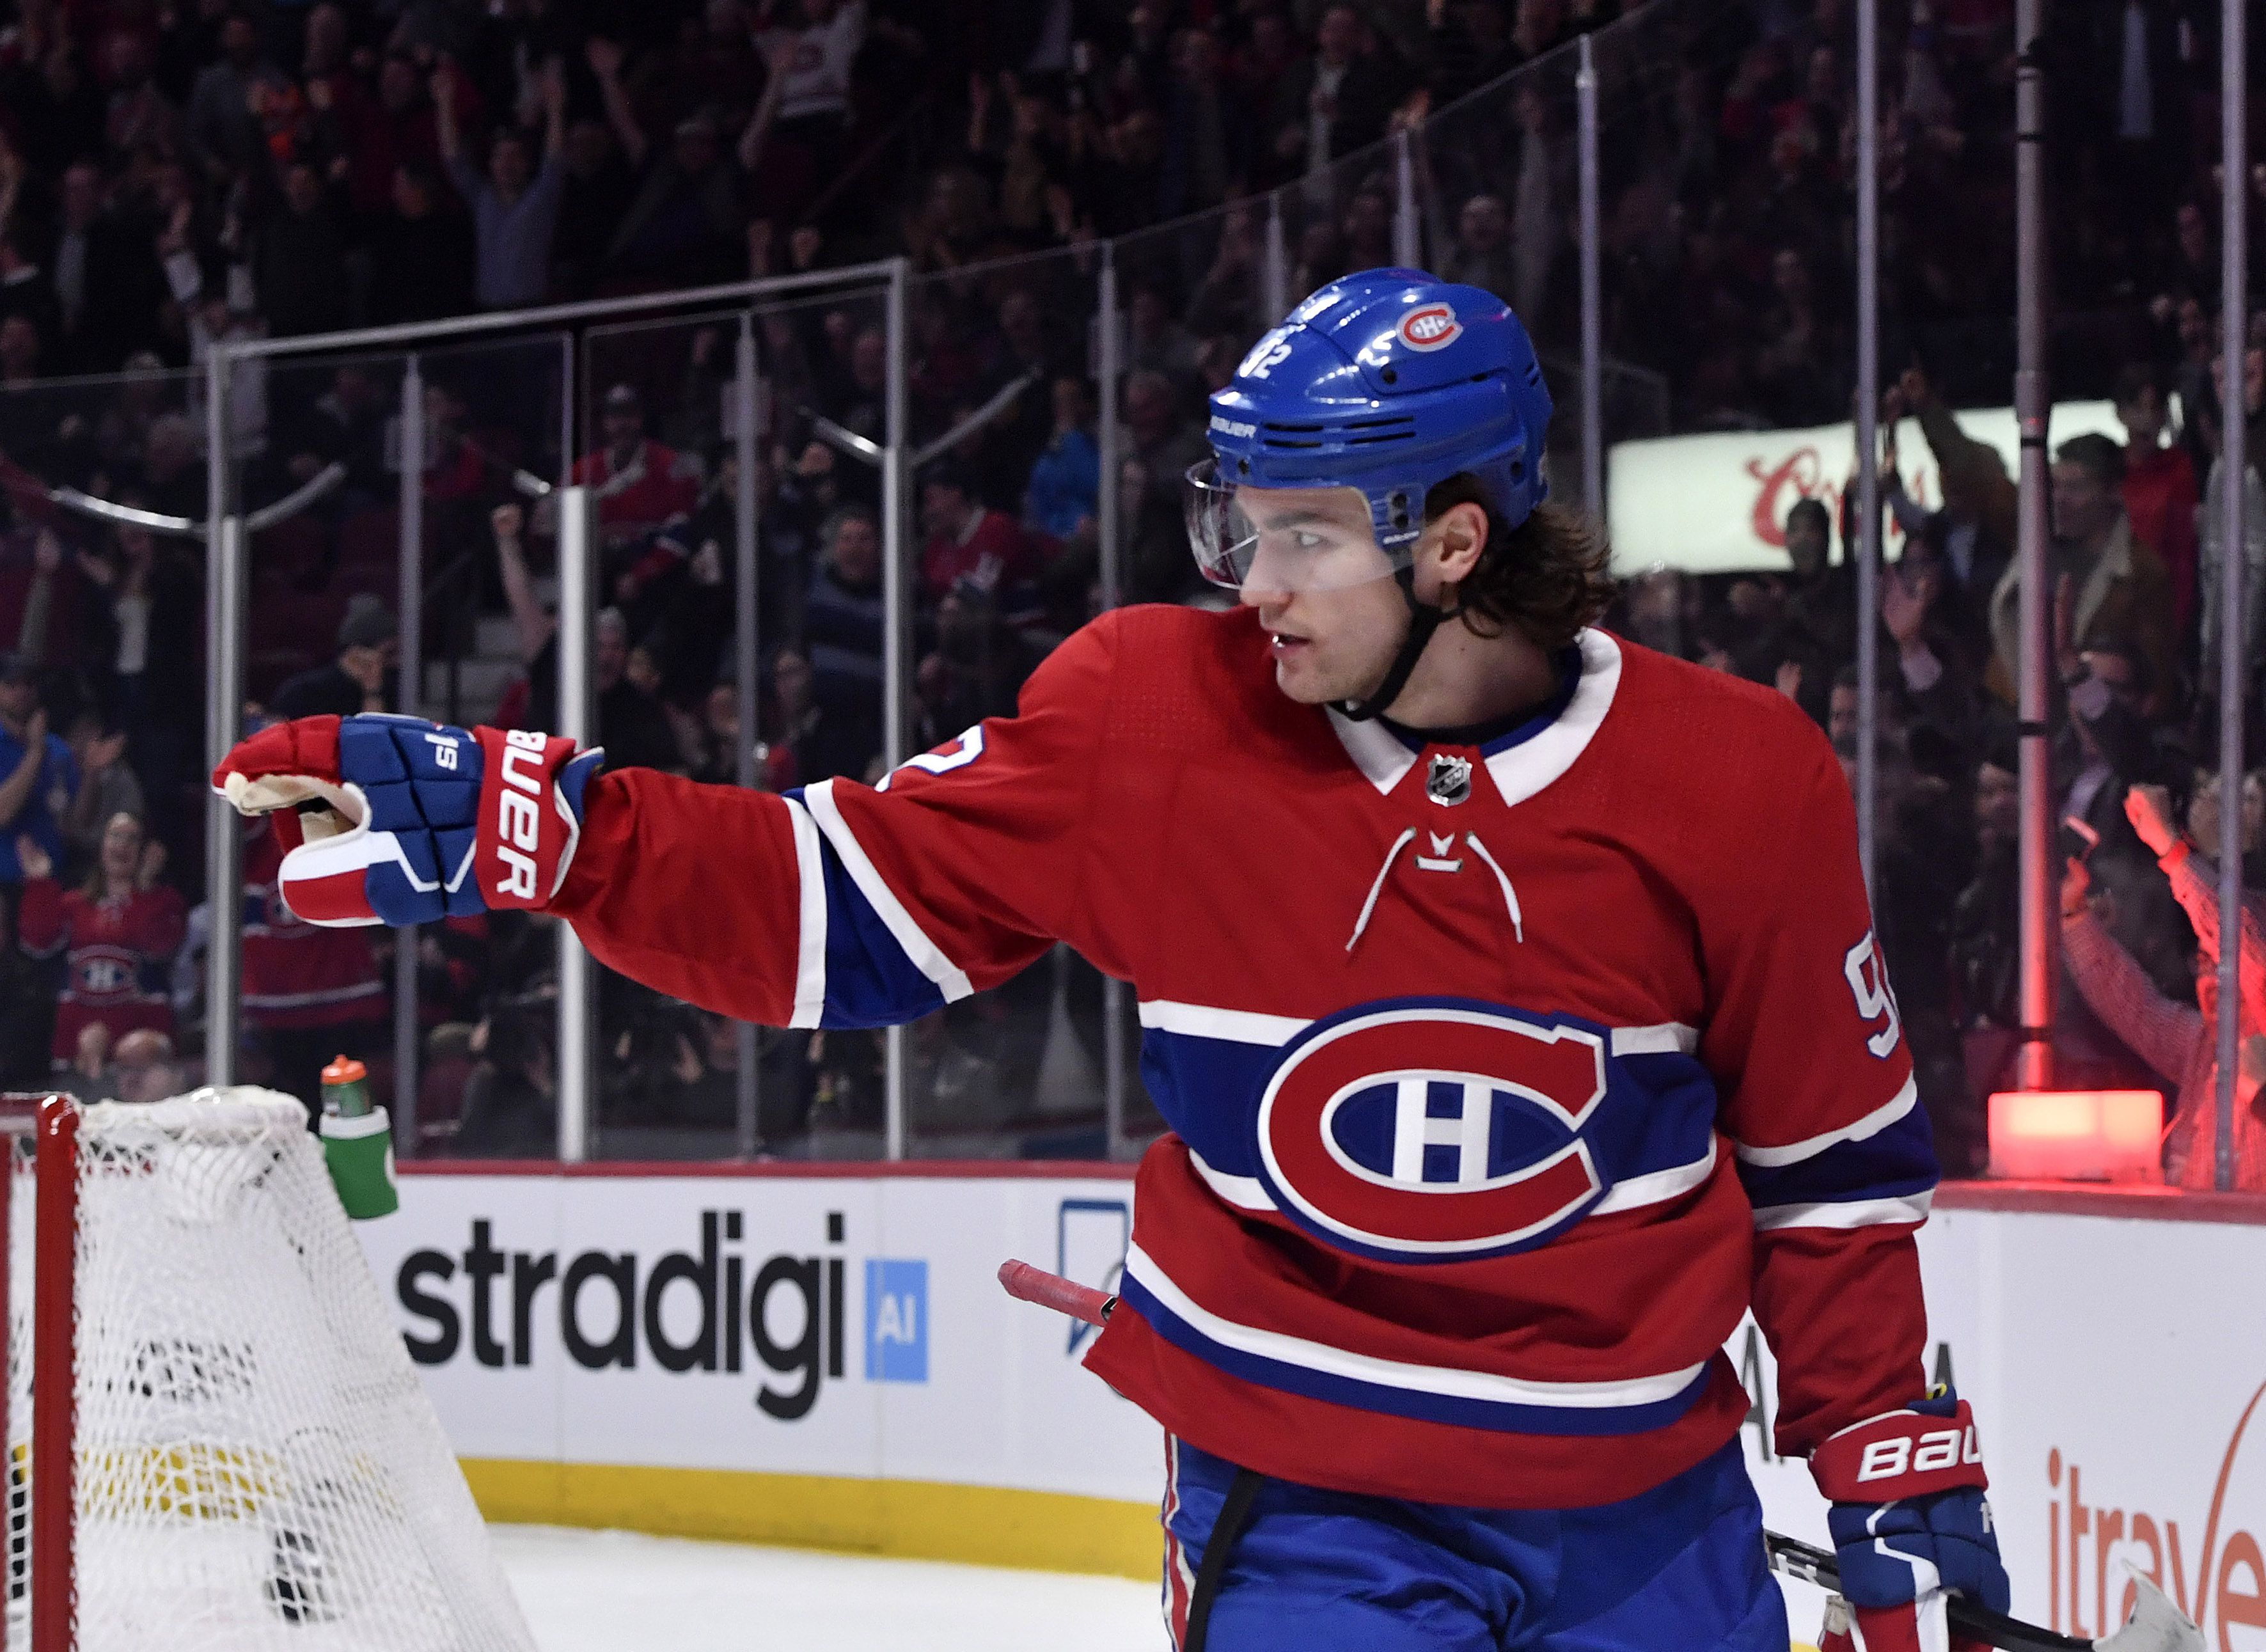 f6d8426b4 A mea culpa about The Habs and more  We all make mistakes - The Globe and  Mail